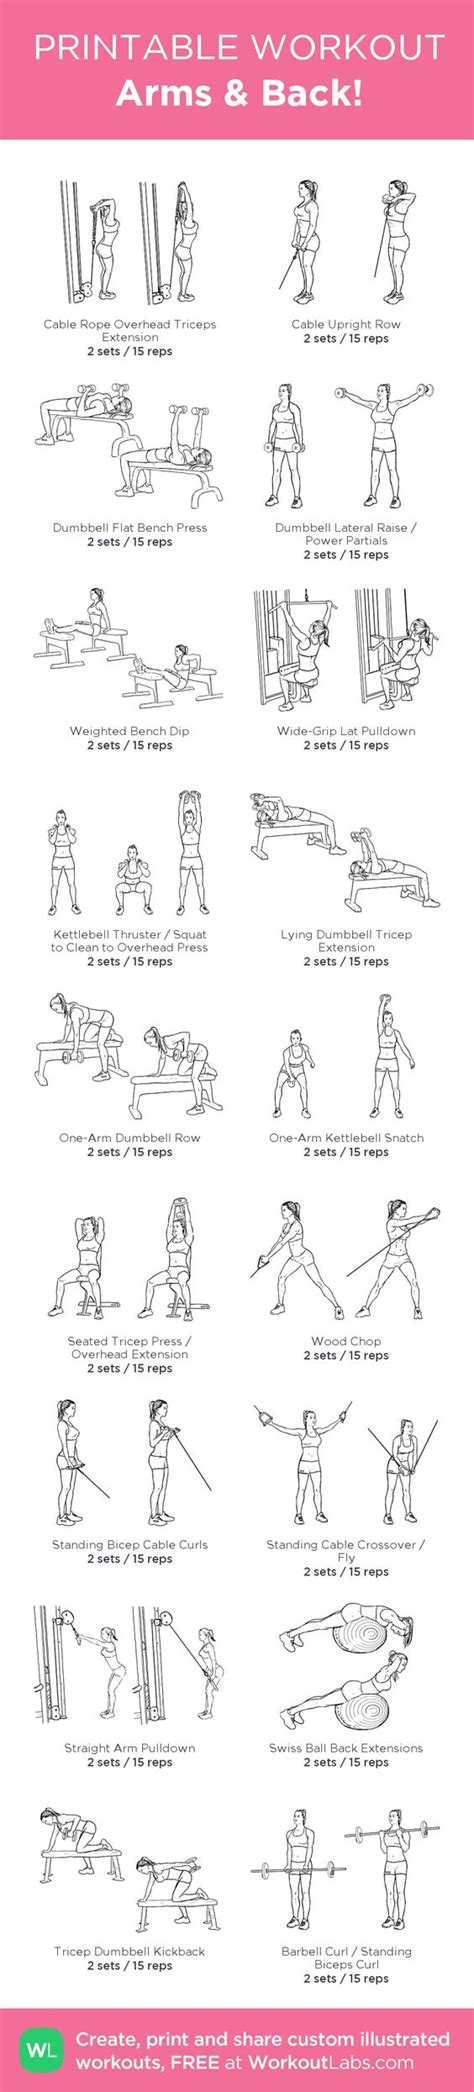 printable workout plan for the gym arms back my custom workout created at workoutlabs